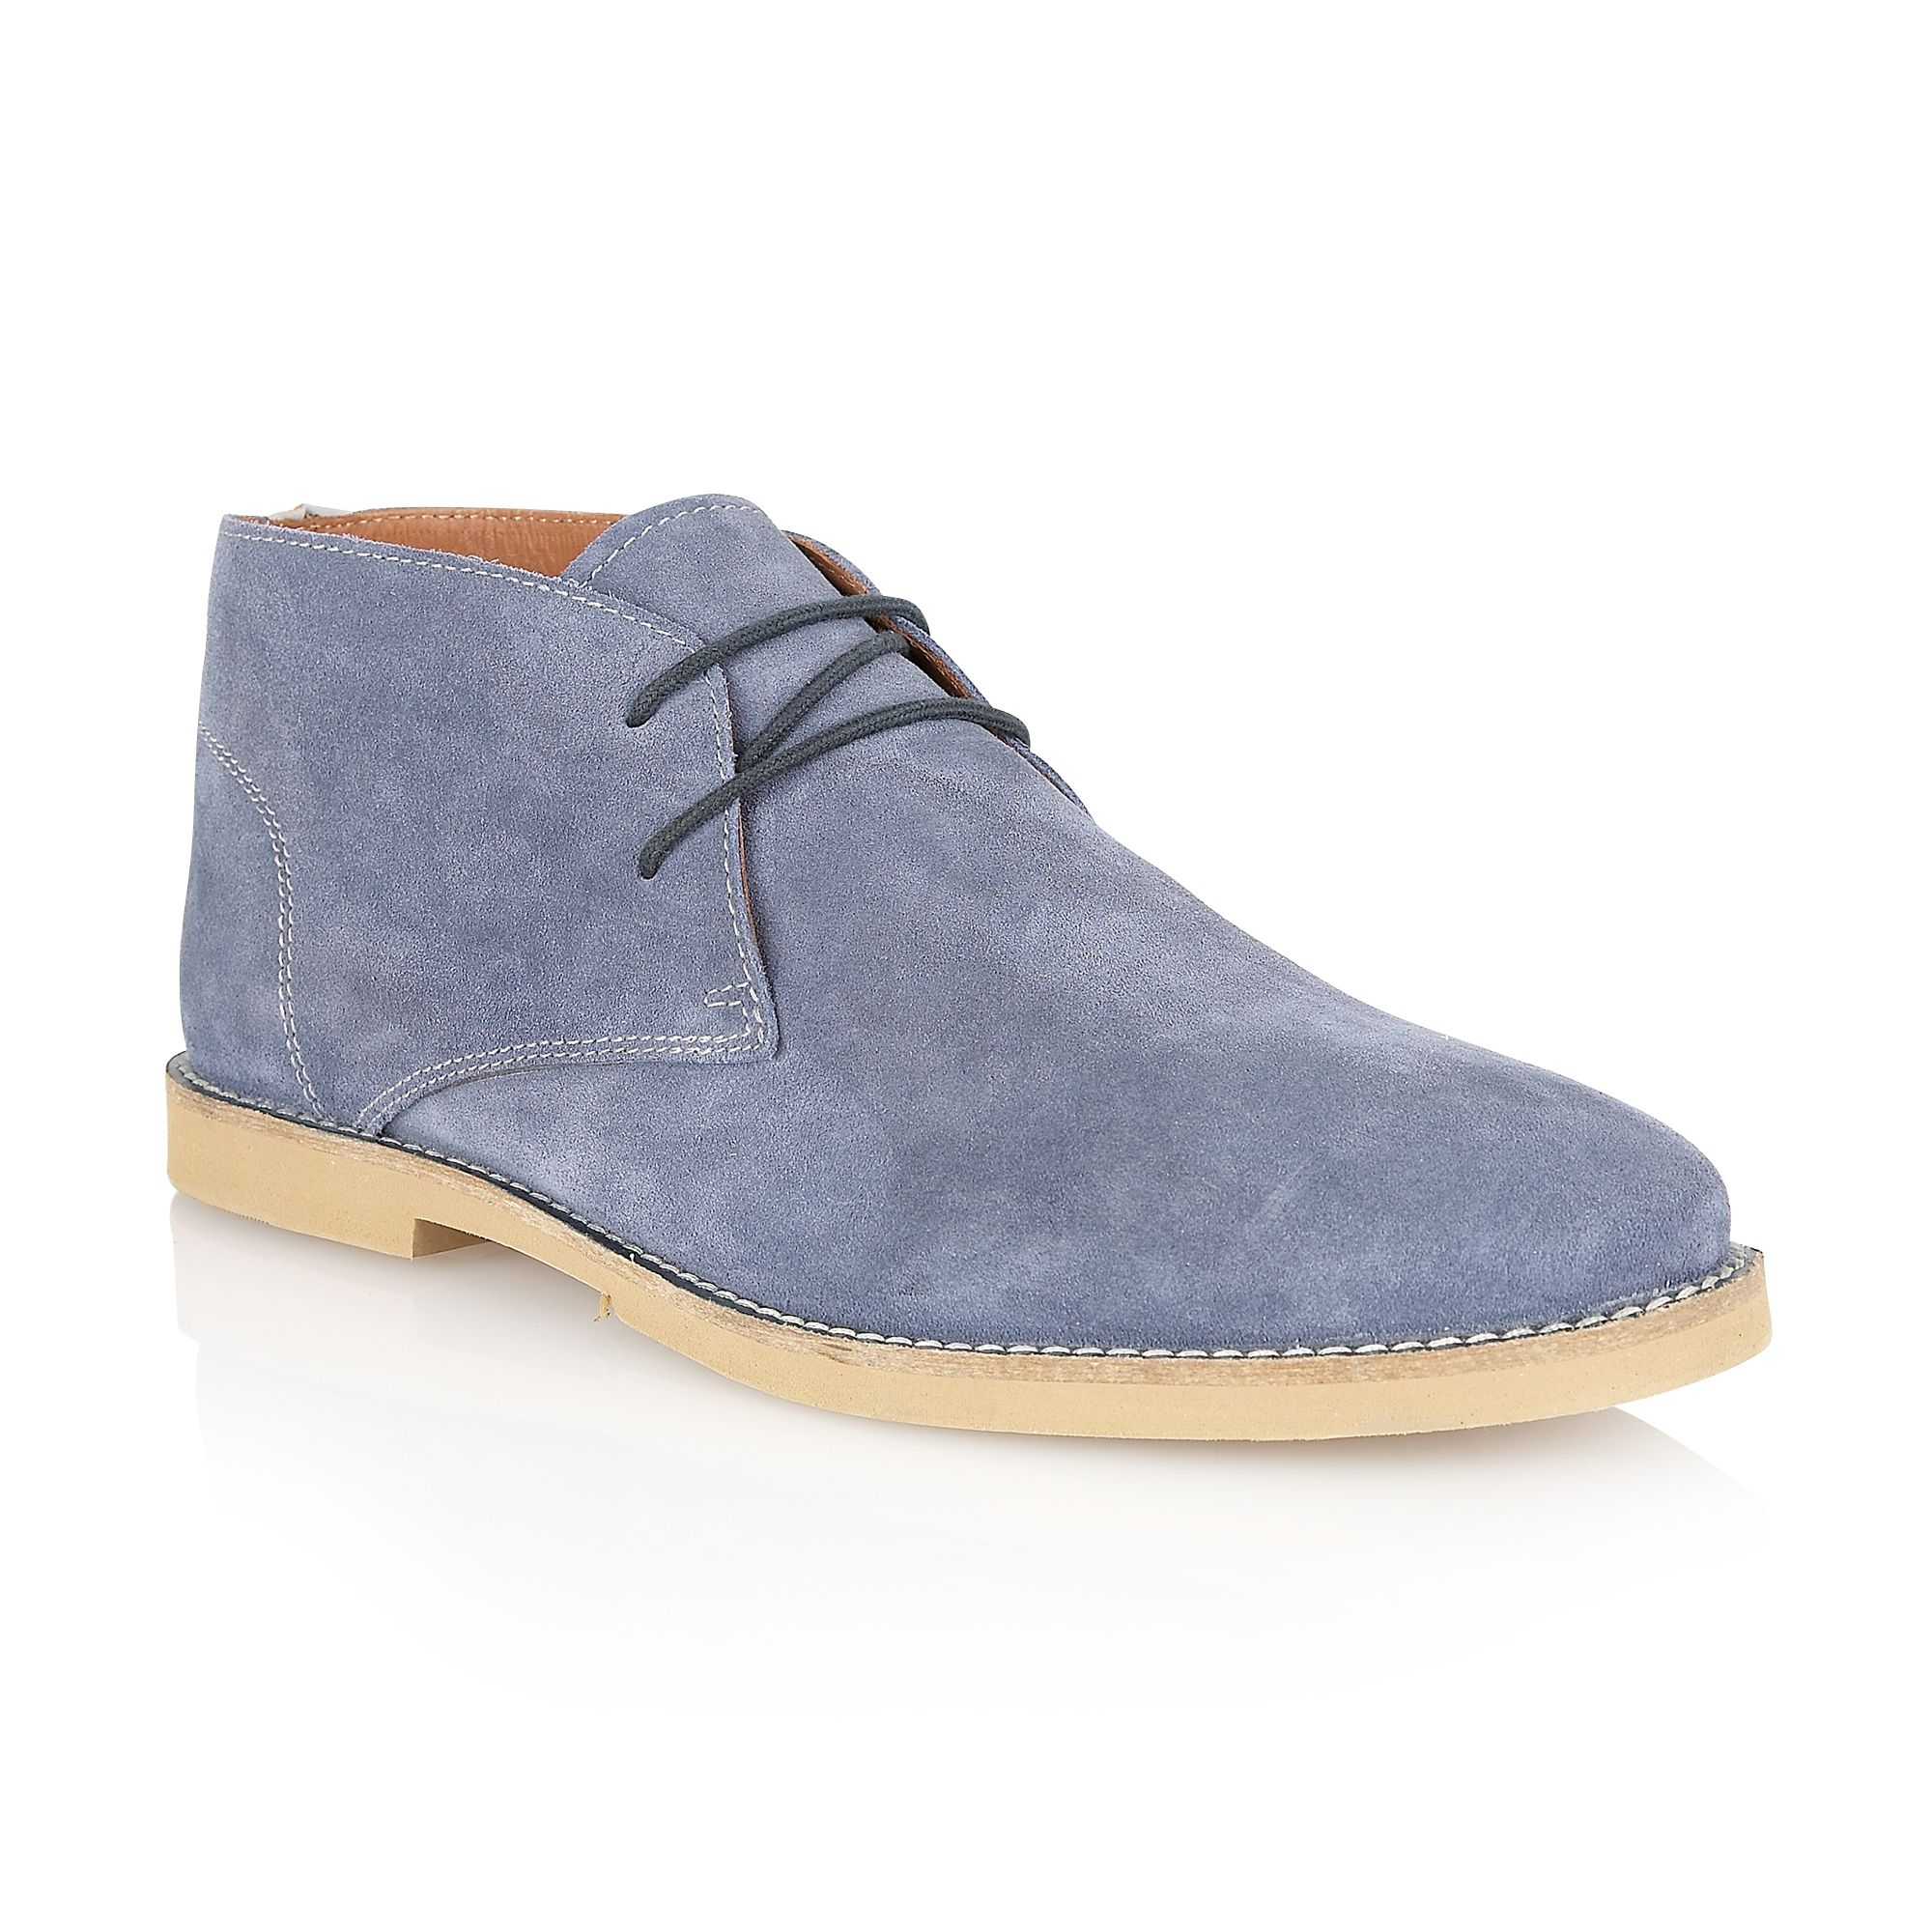 Totton round-toe boot